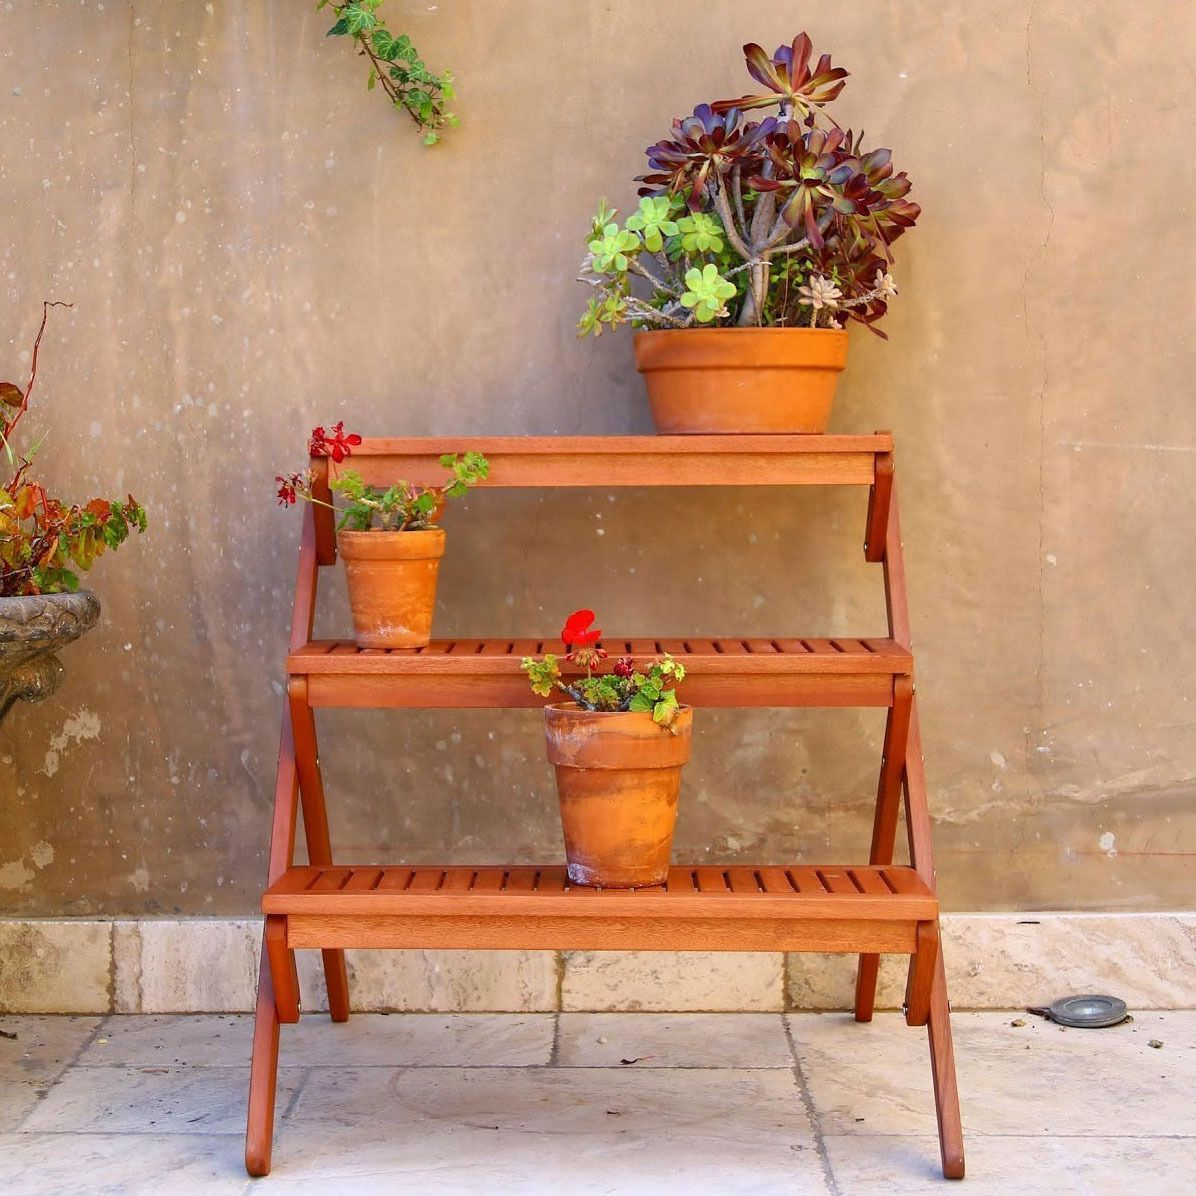 Find A Home For Your Potted Plants With This Wooden Outdoor Three Tier  Plant Stand